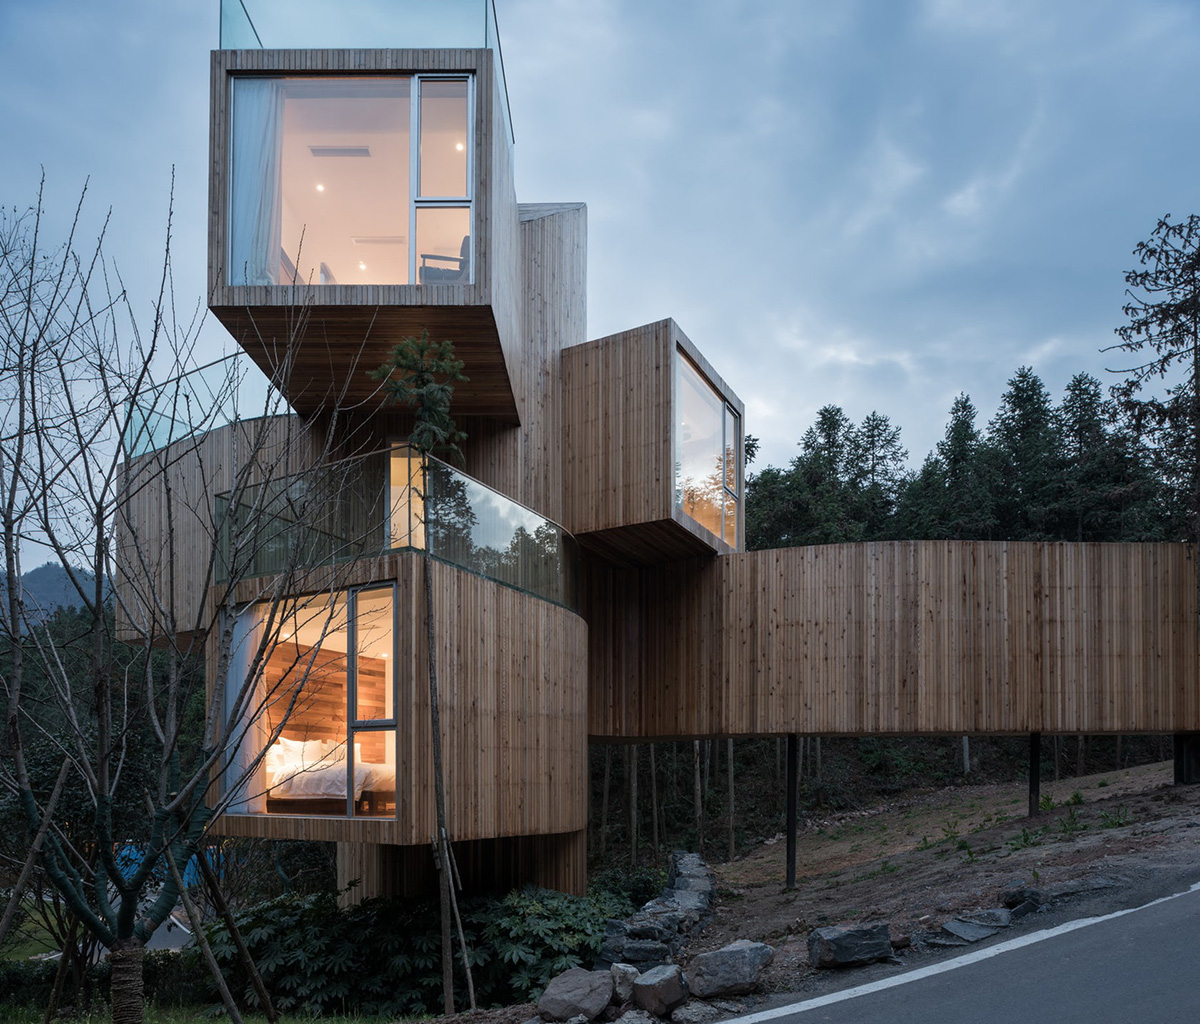 01-qiyunshan-tree-house-bengo-studio